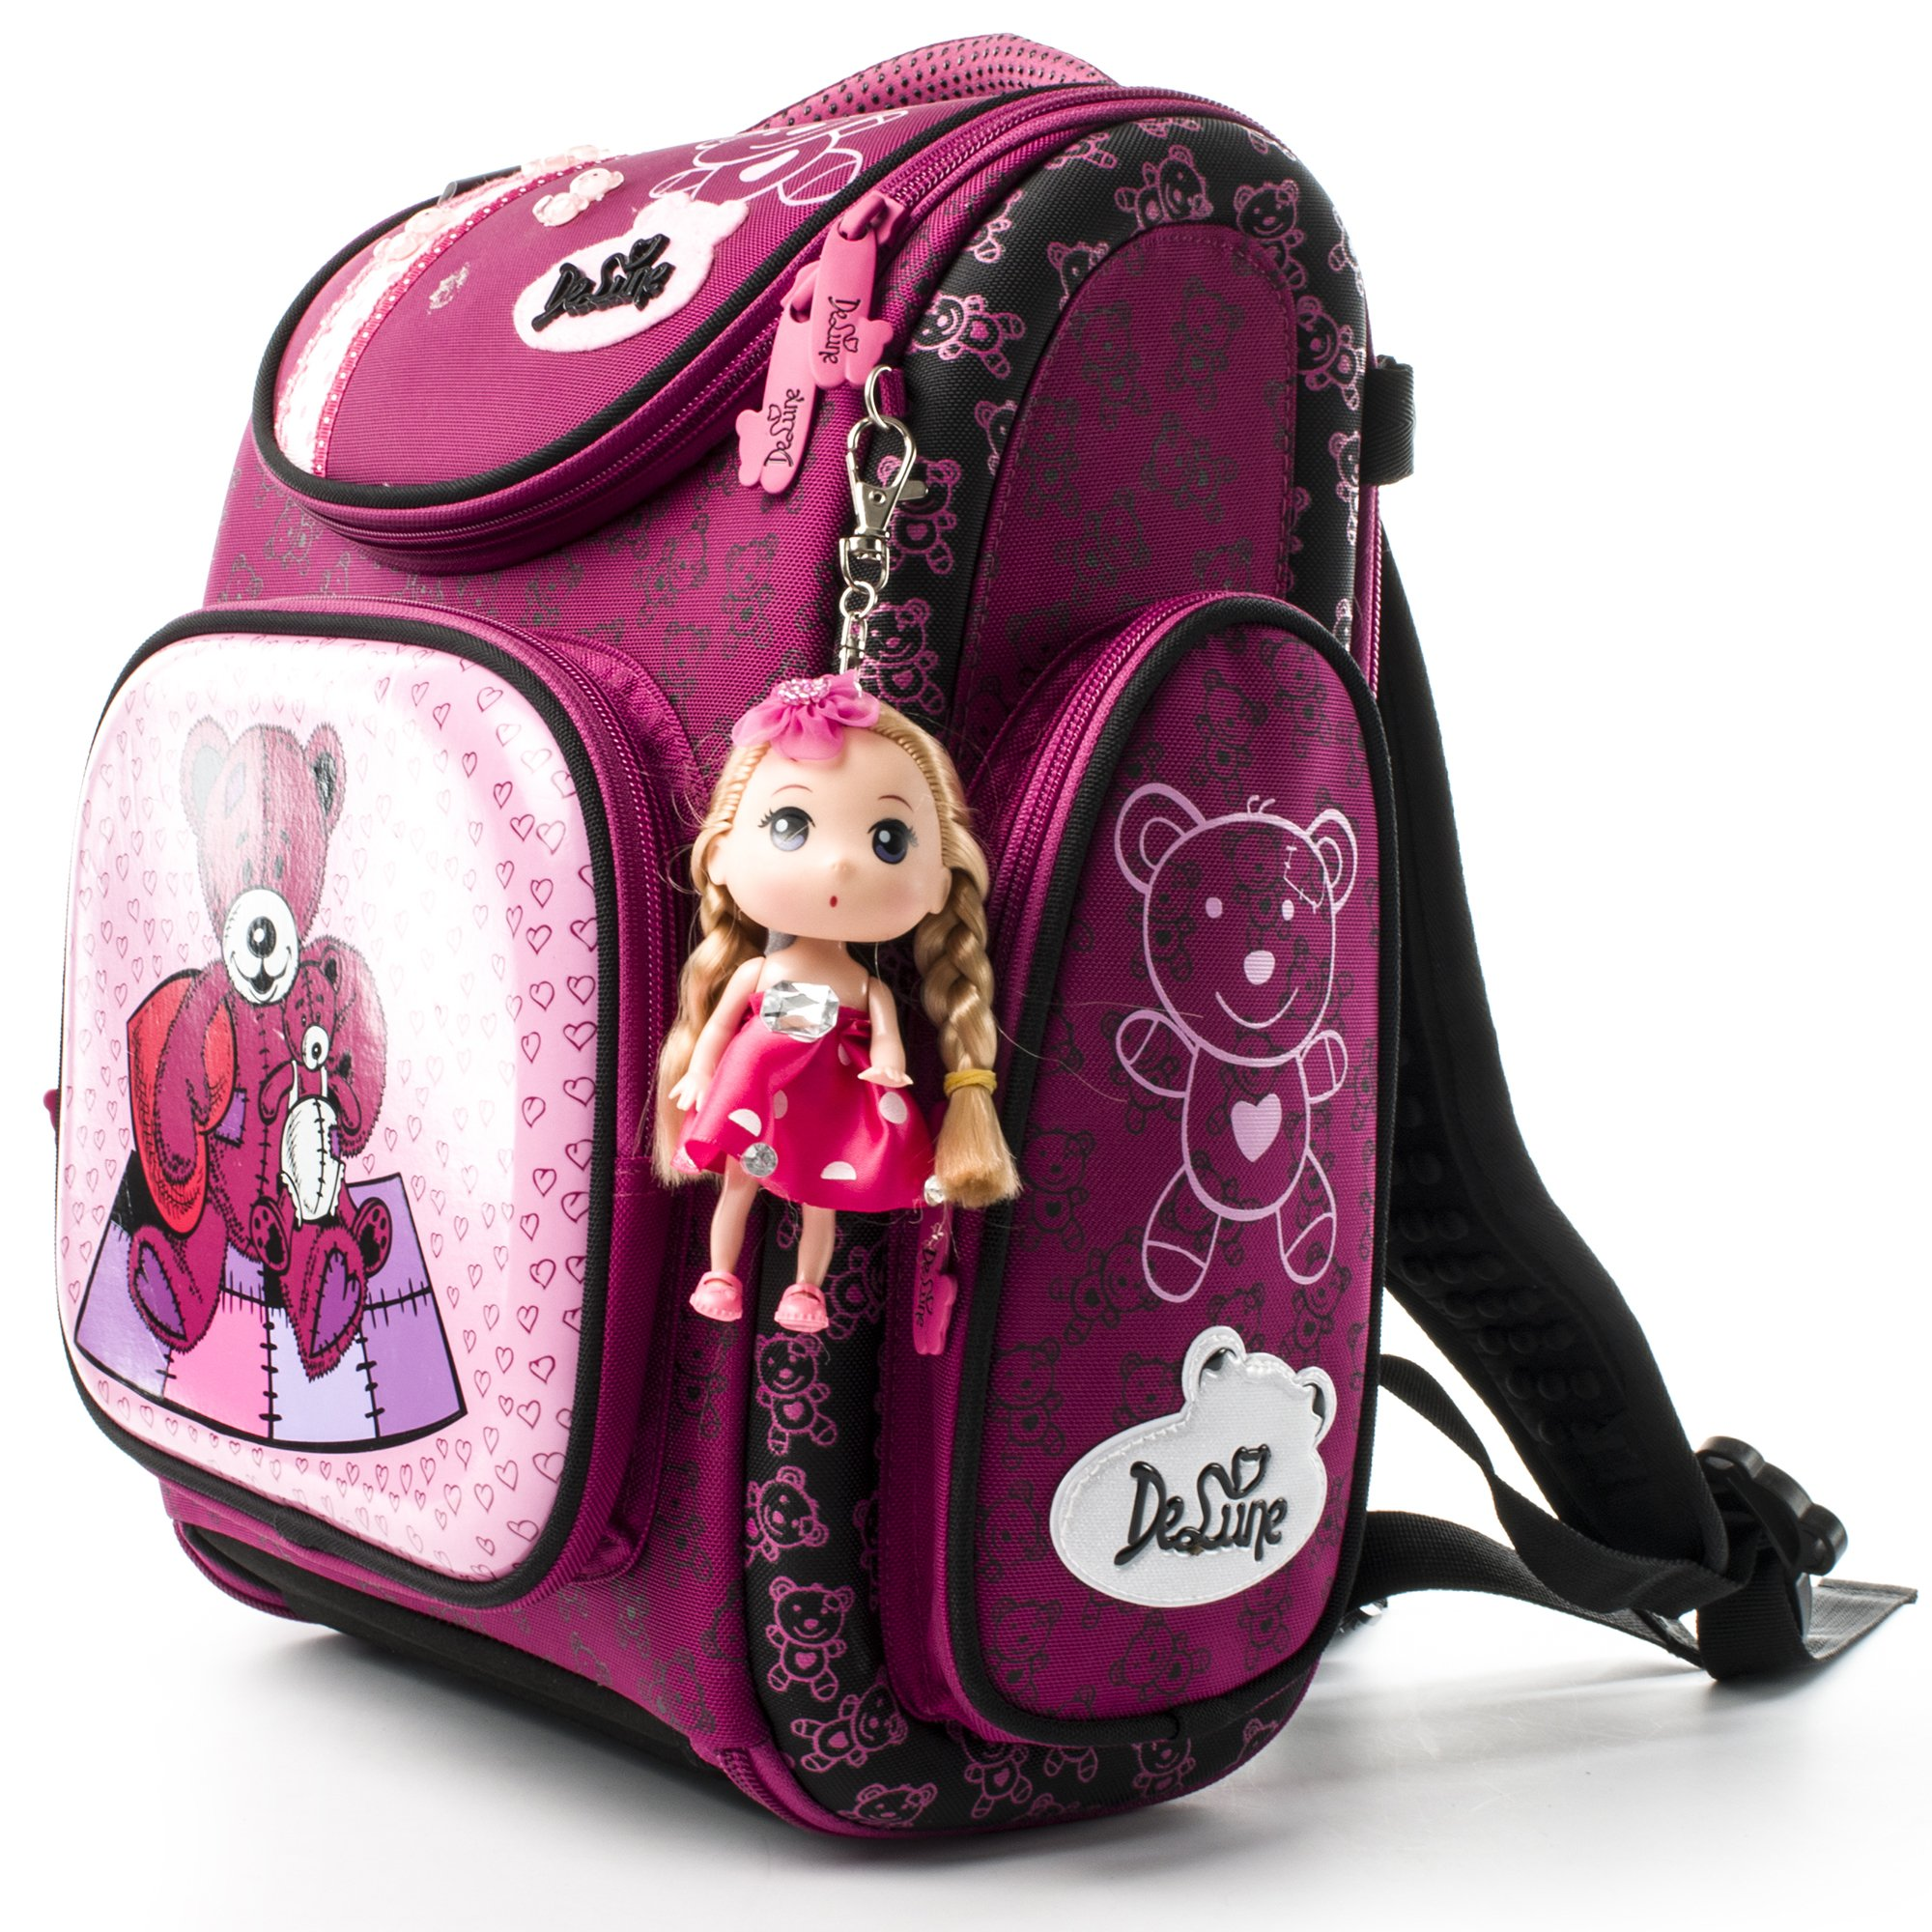 Kids Backpack for Girls and Boys Cute School Bag - Waterproof/Unique/Noble (3-123)